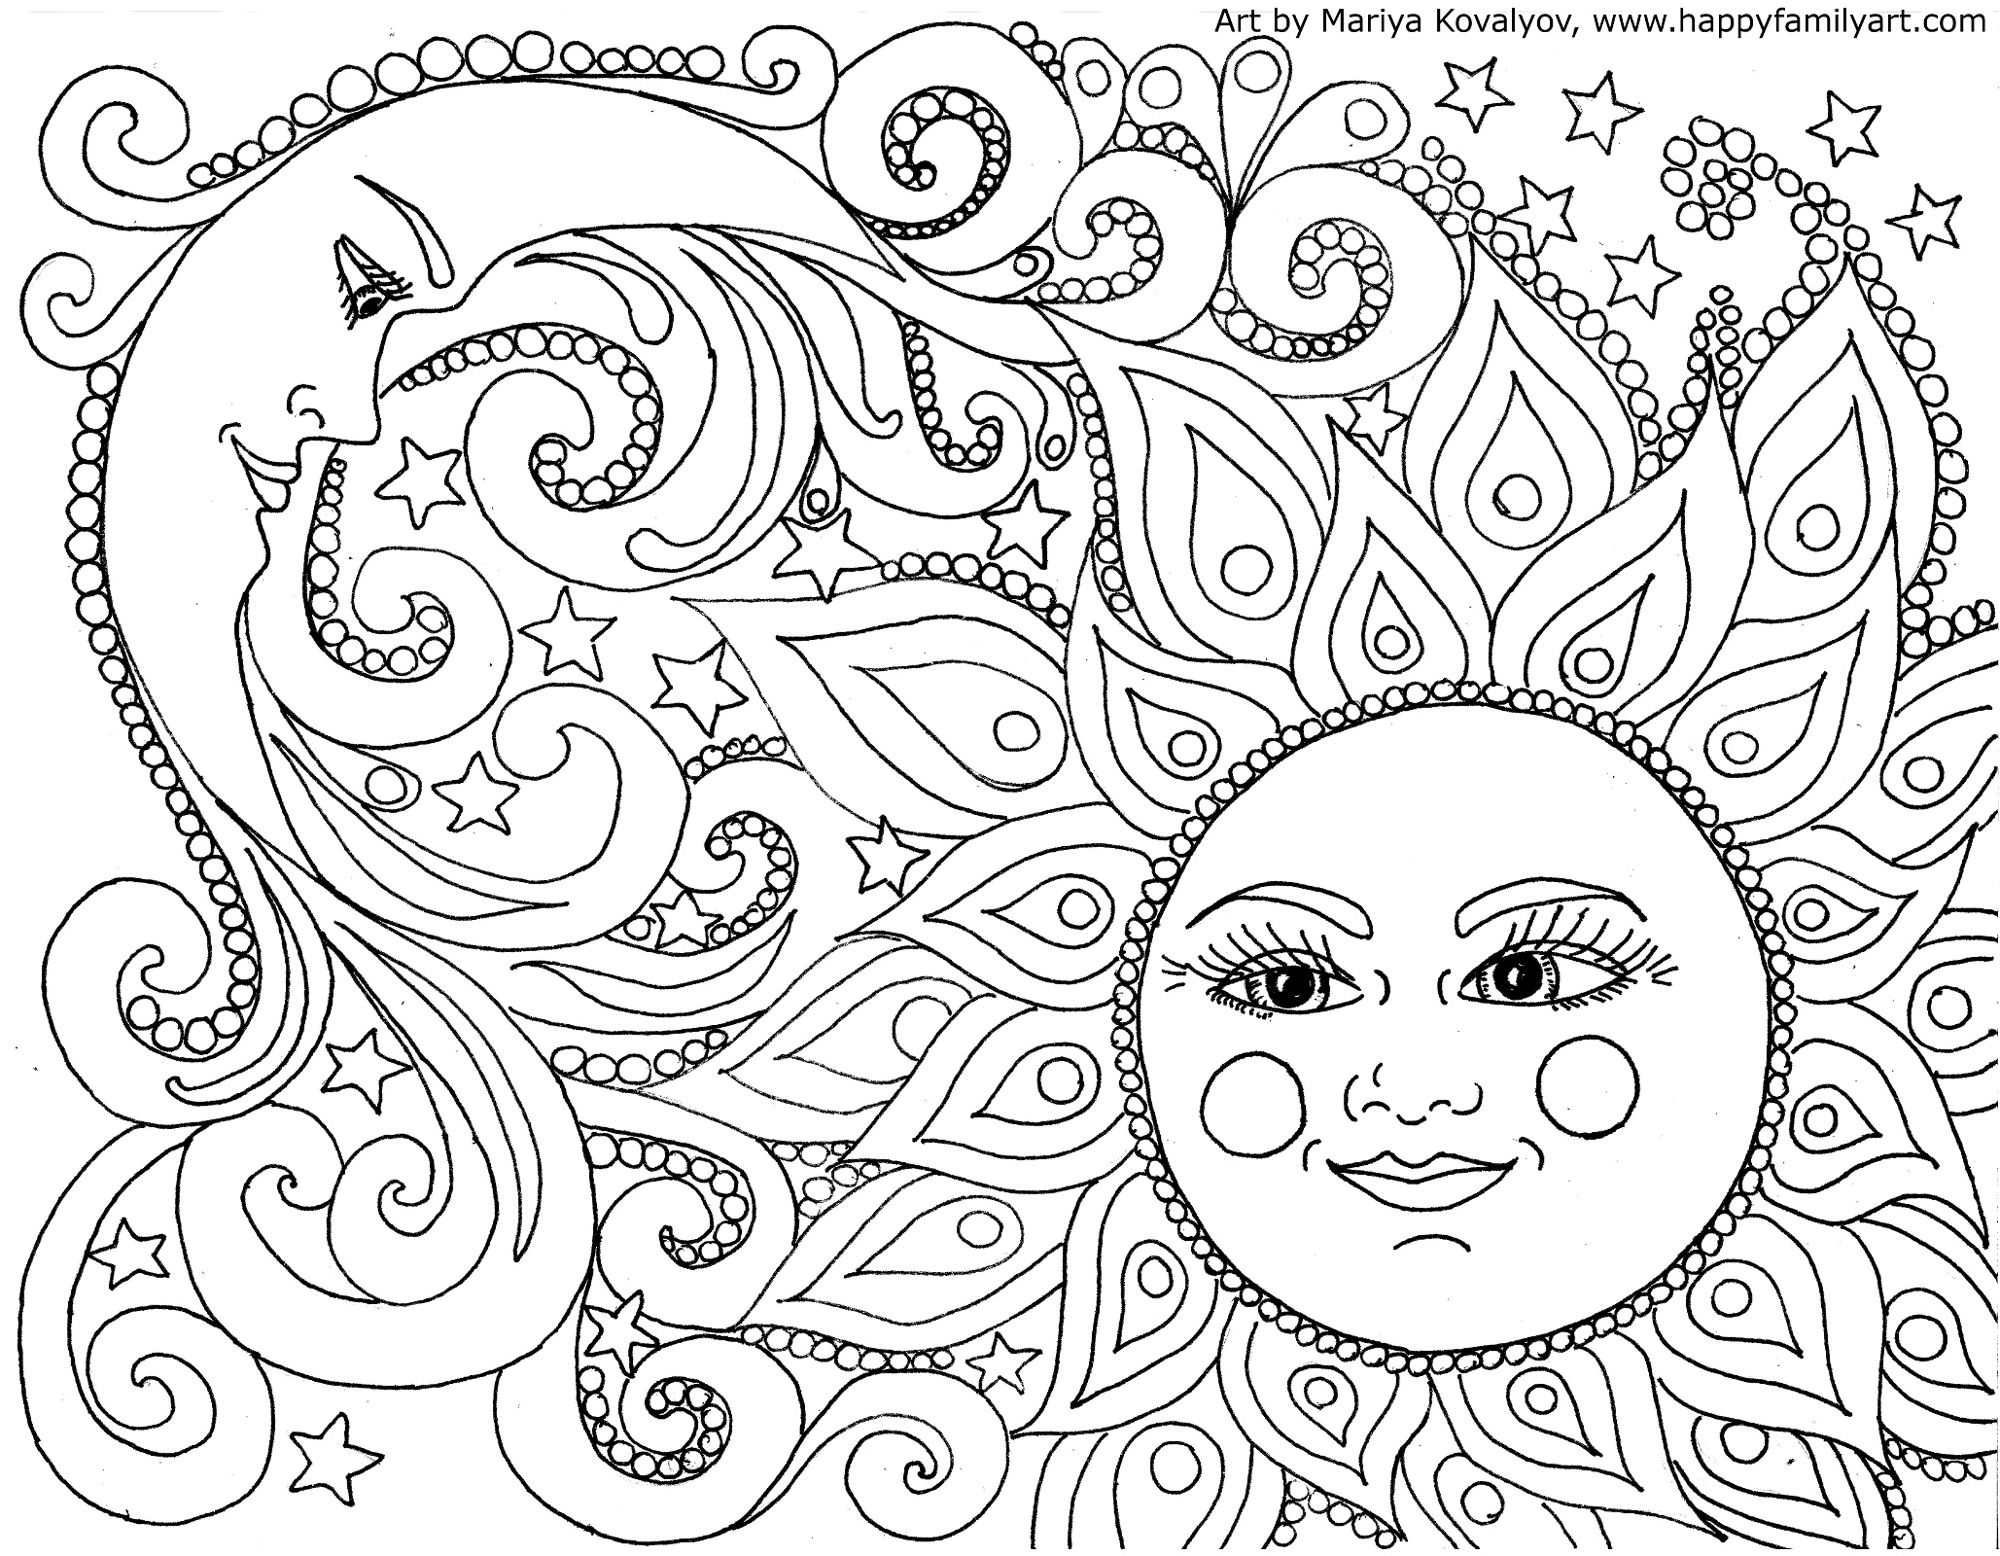 I made many great fun and original coloring pages color your heart out printable adult coloring pagescoloring booksfree